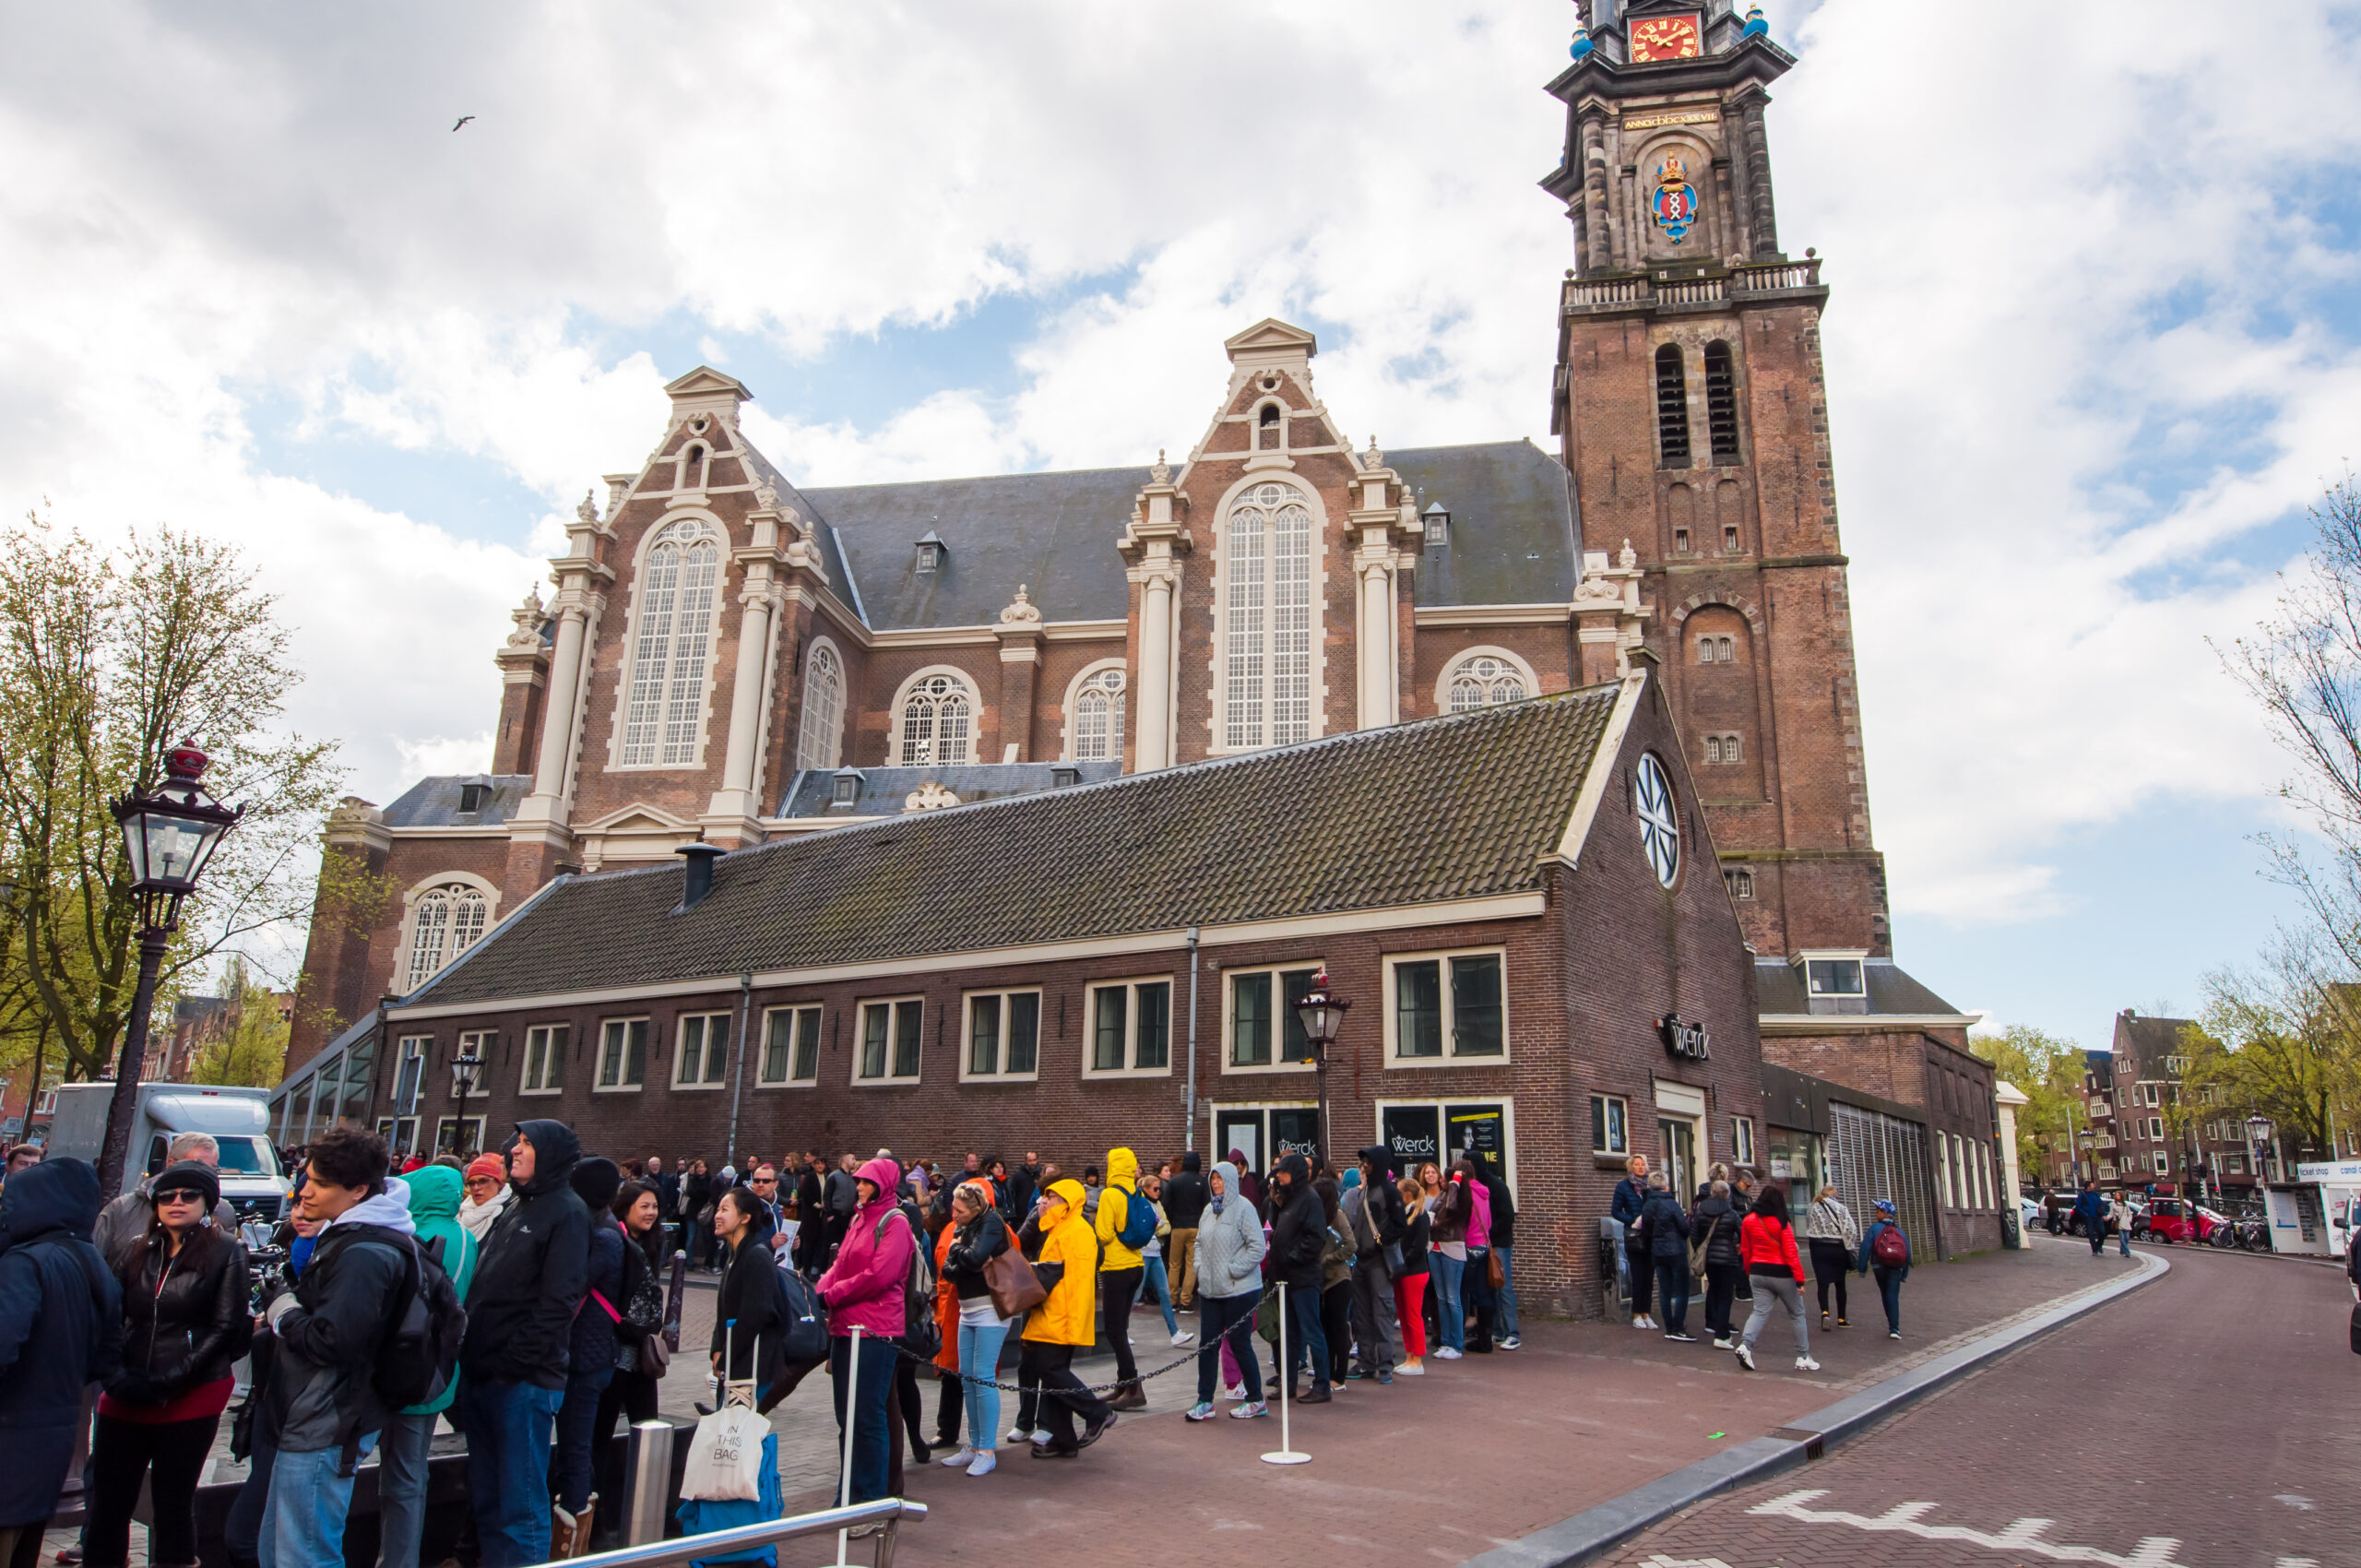 The Anne Frank House Museum is one of Amsterdam's most popular museums opened in 1960.